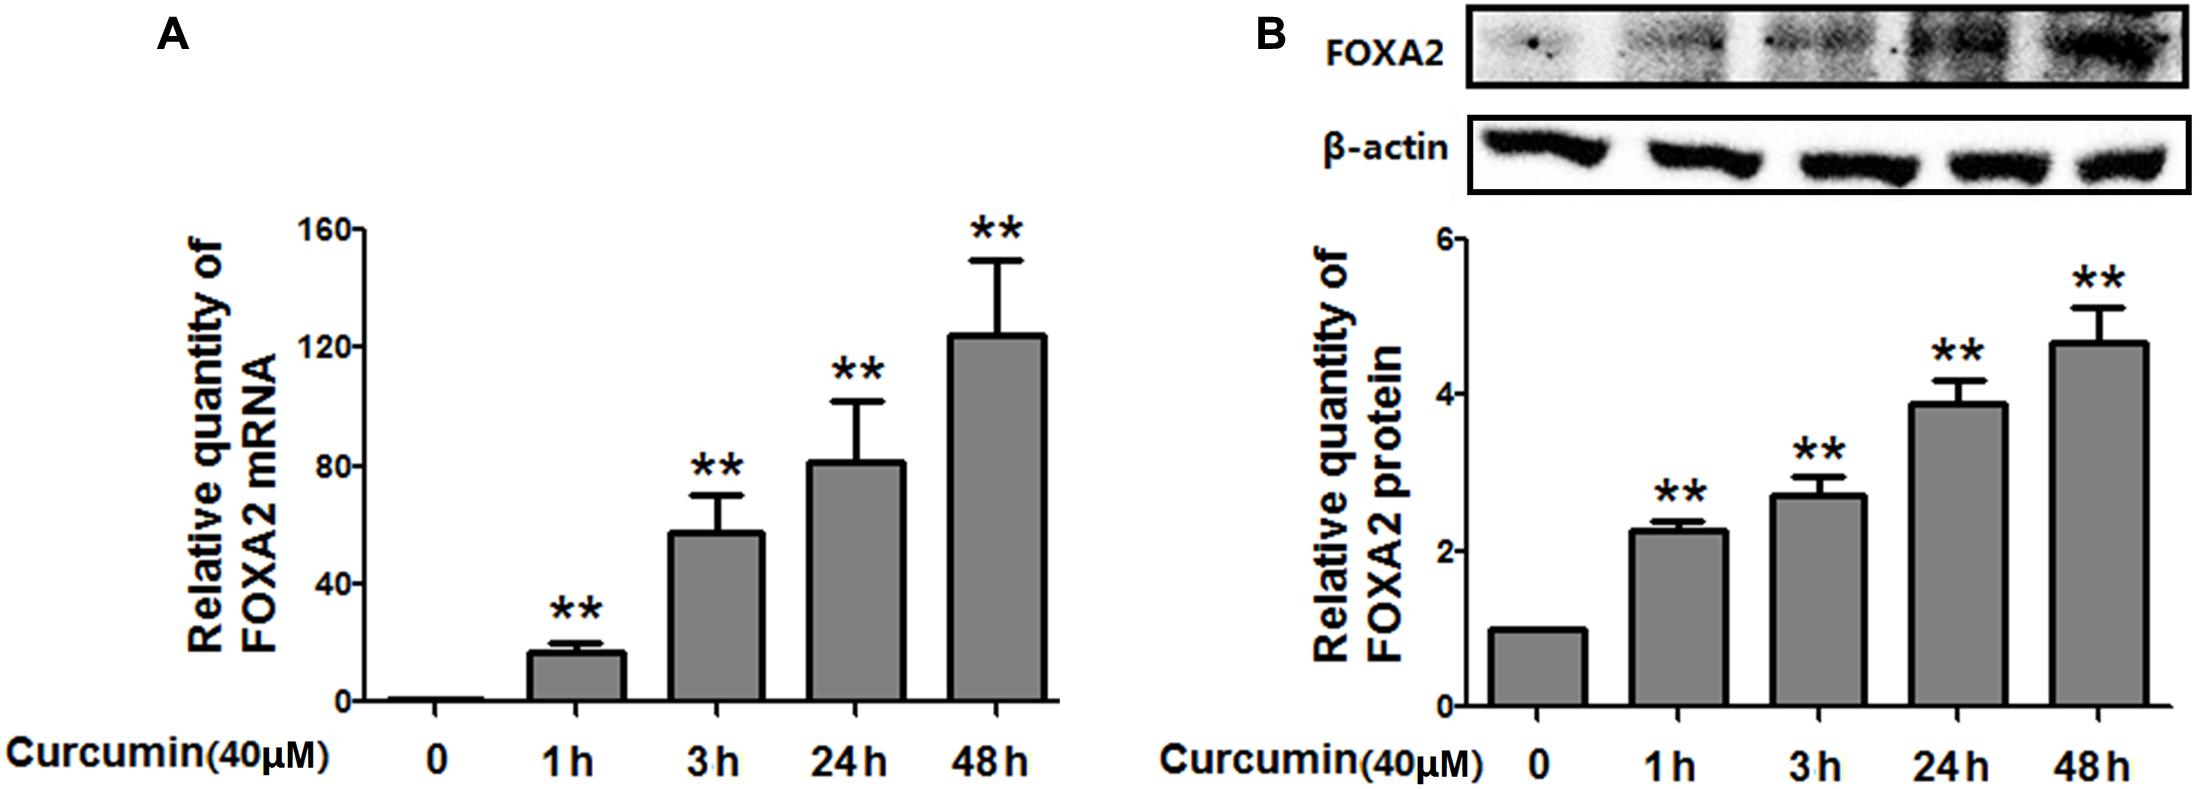 Frontiers | Curcumin Inhibits Growth of Human NCI-H292 Lung Squamous